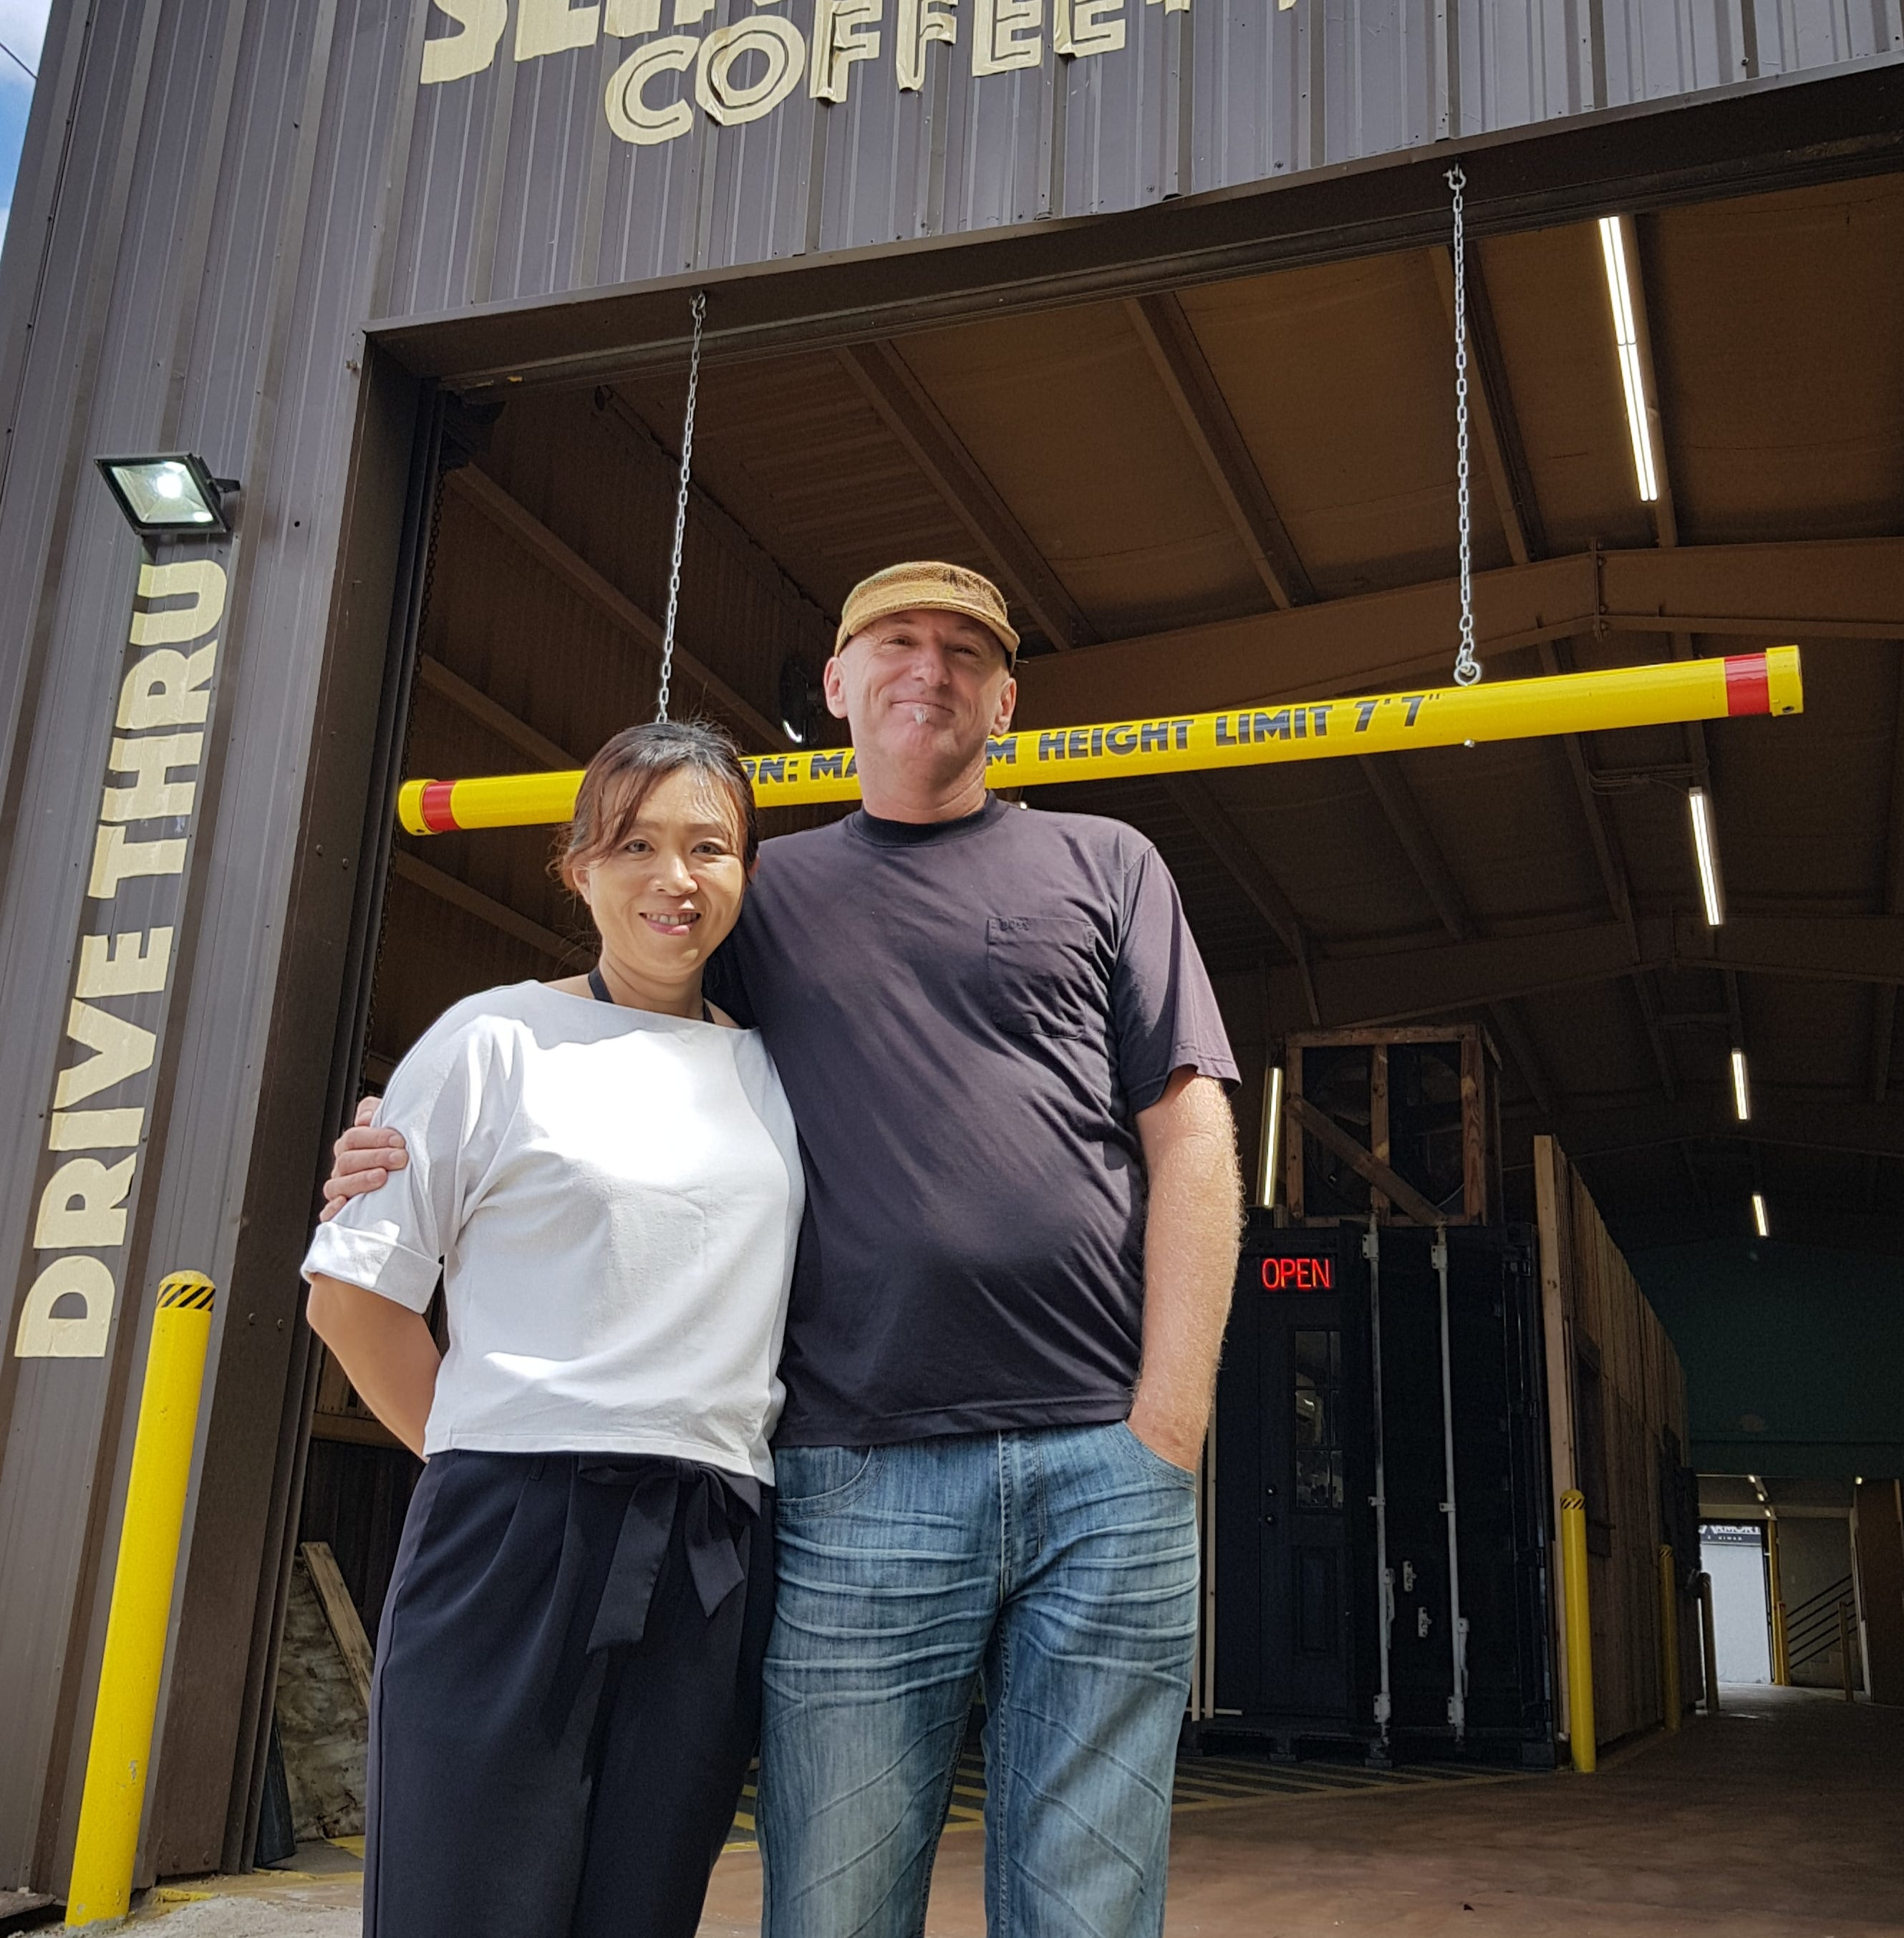 Sling Stone Coffee drive-thru opens second location in East Agana